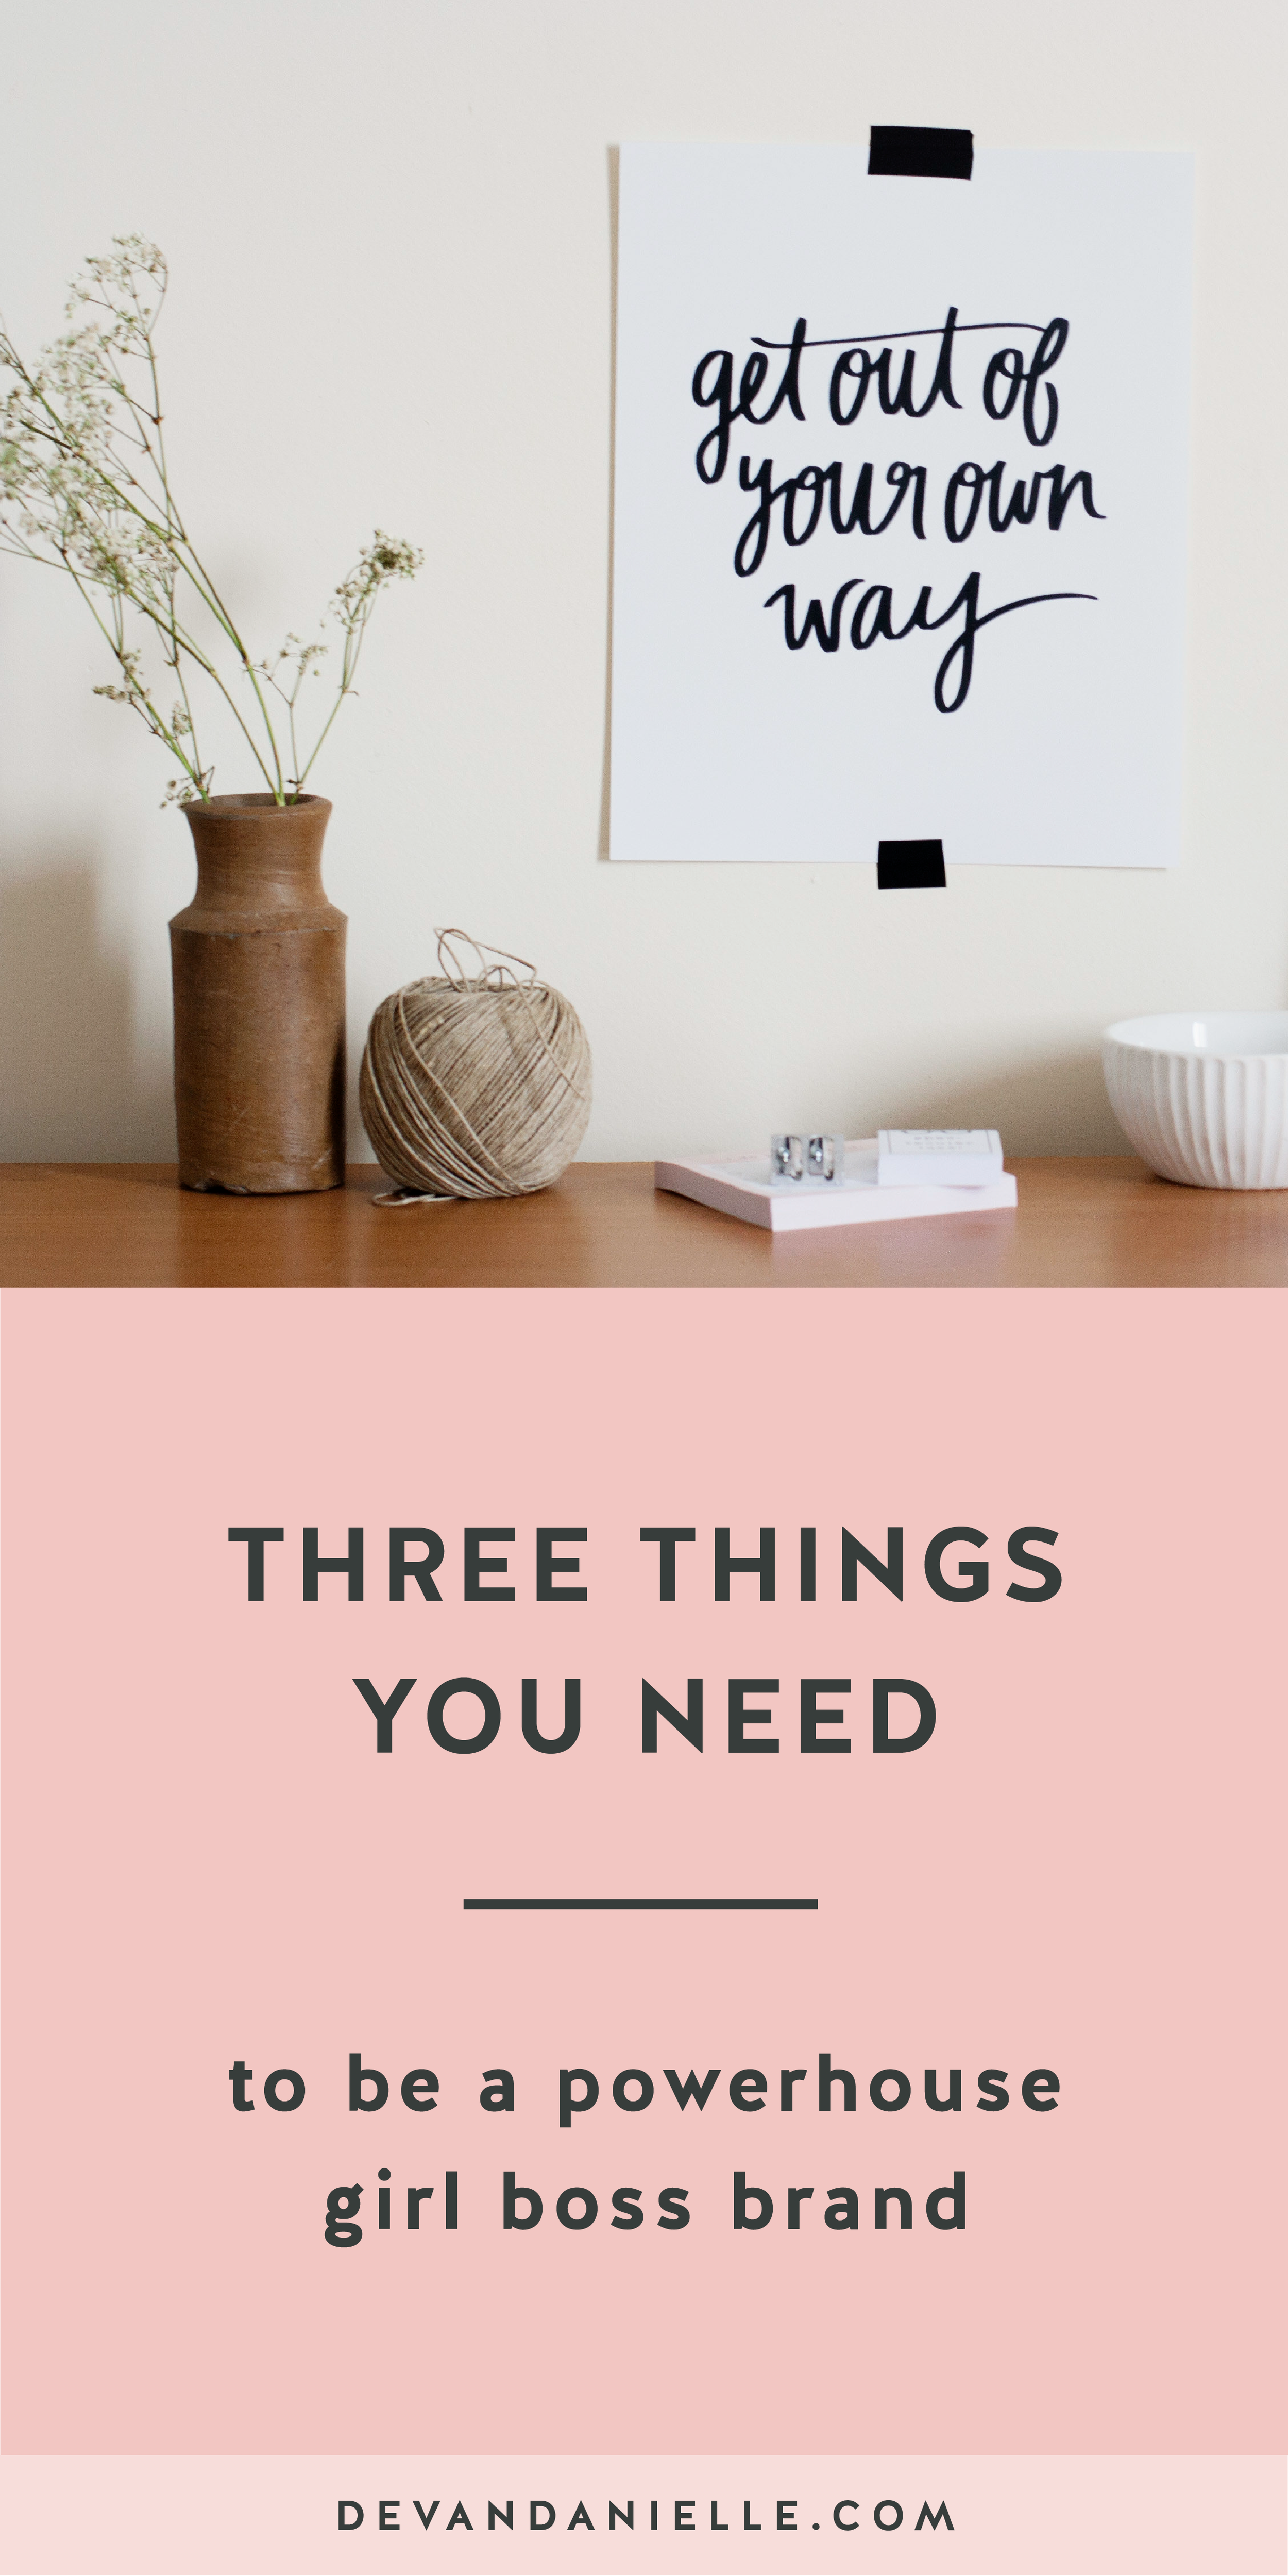 three things you need to be a powerhouse girl boss brand